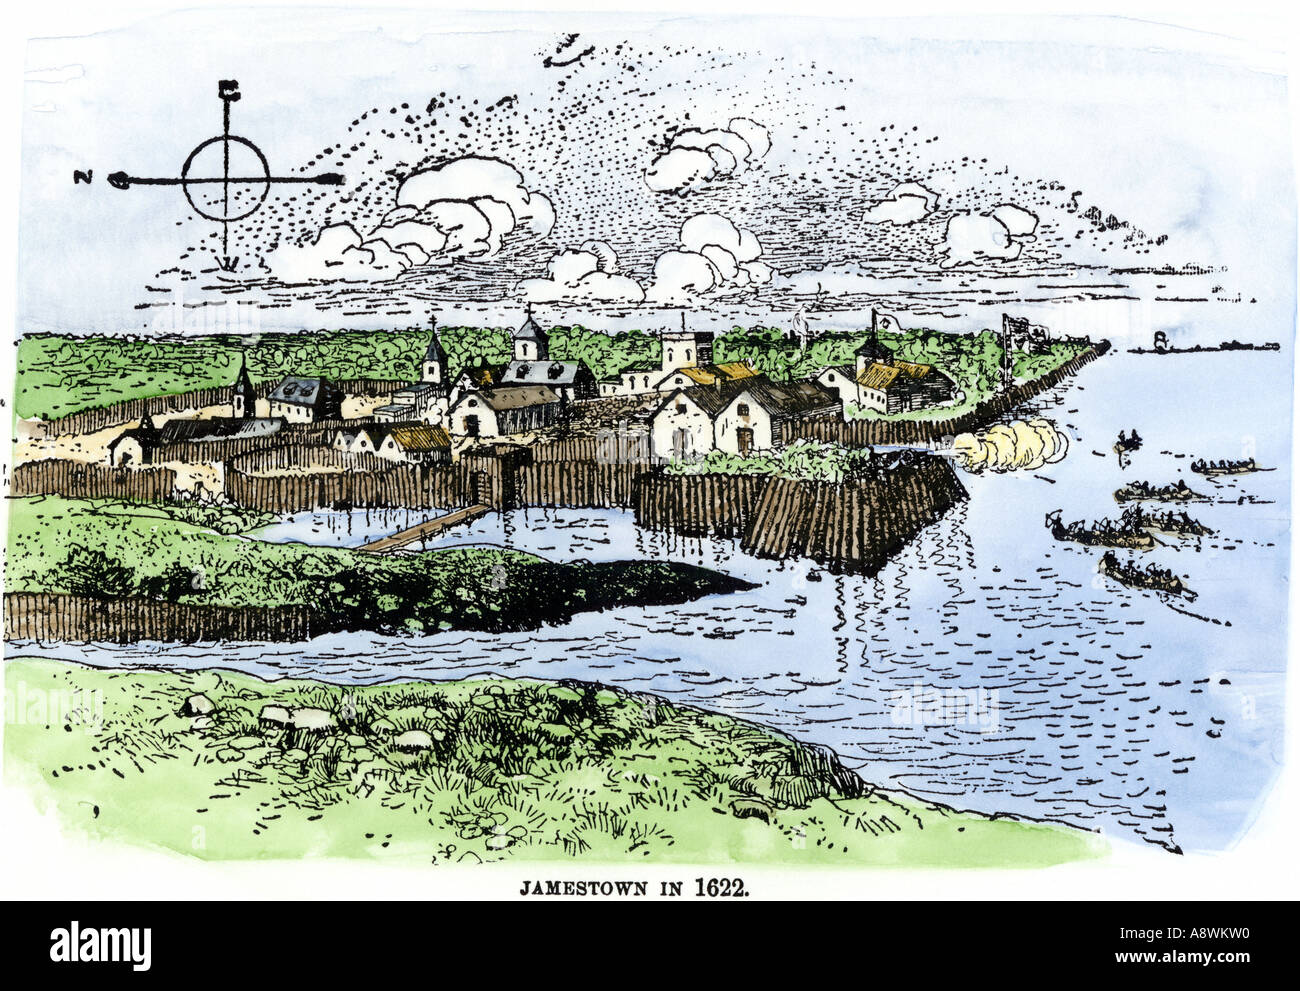 Jamestown fort and settlement as of 1622 Virginia Colony. Hand-colored woodcut - Stock Image